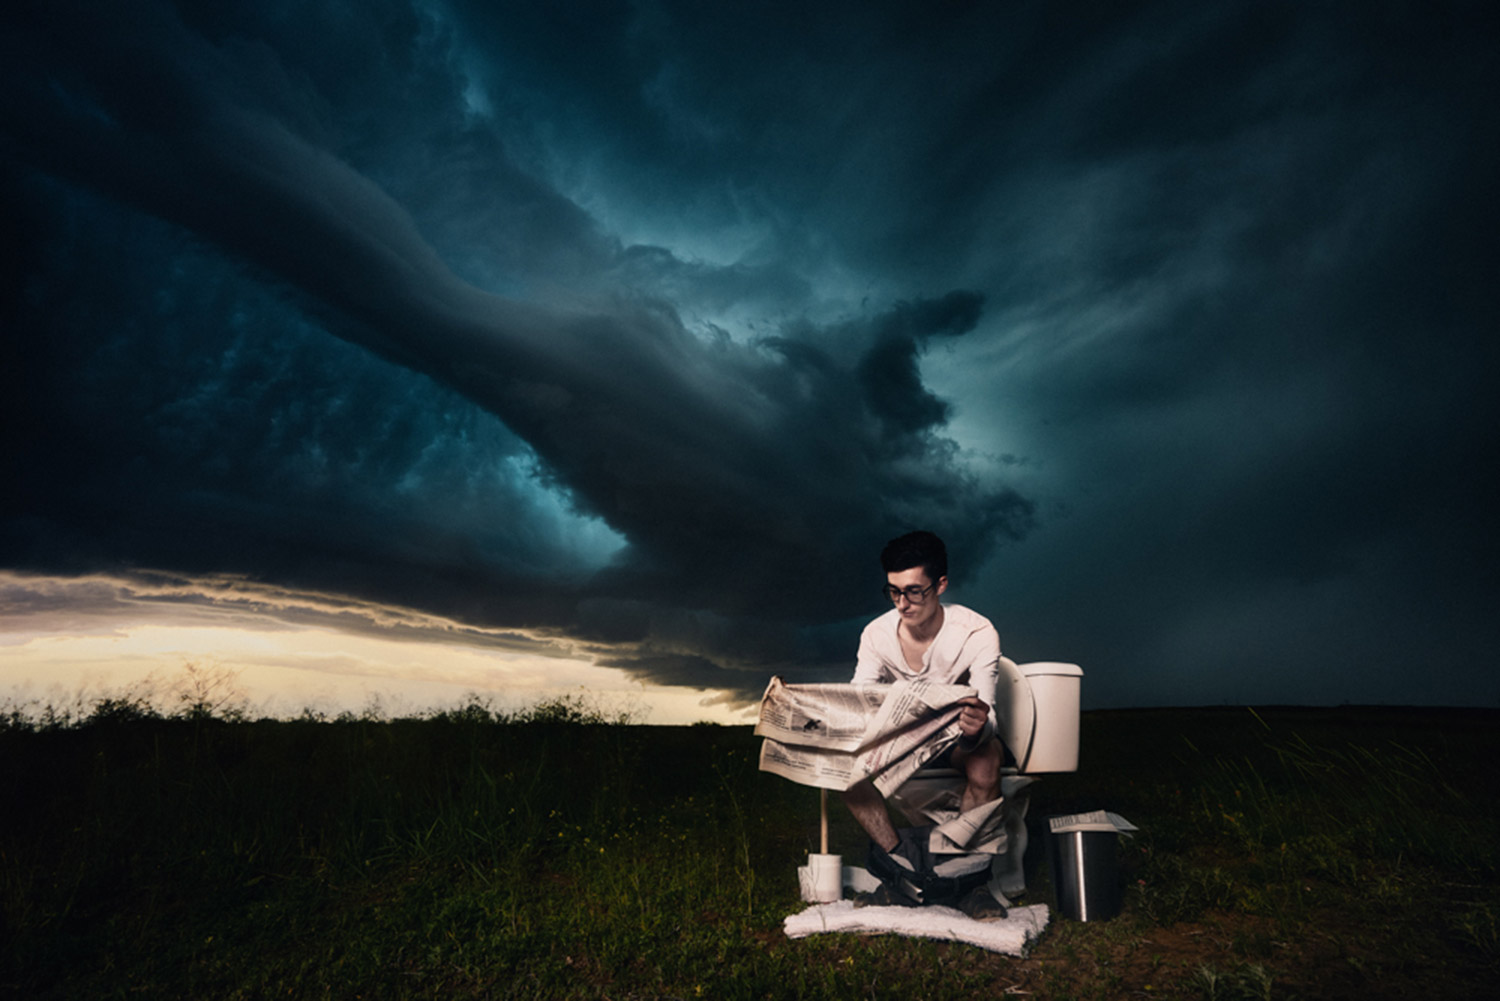 Benjamin Von Wong - man on toilet in field under storm